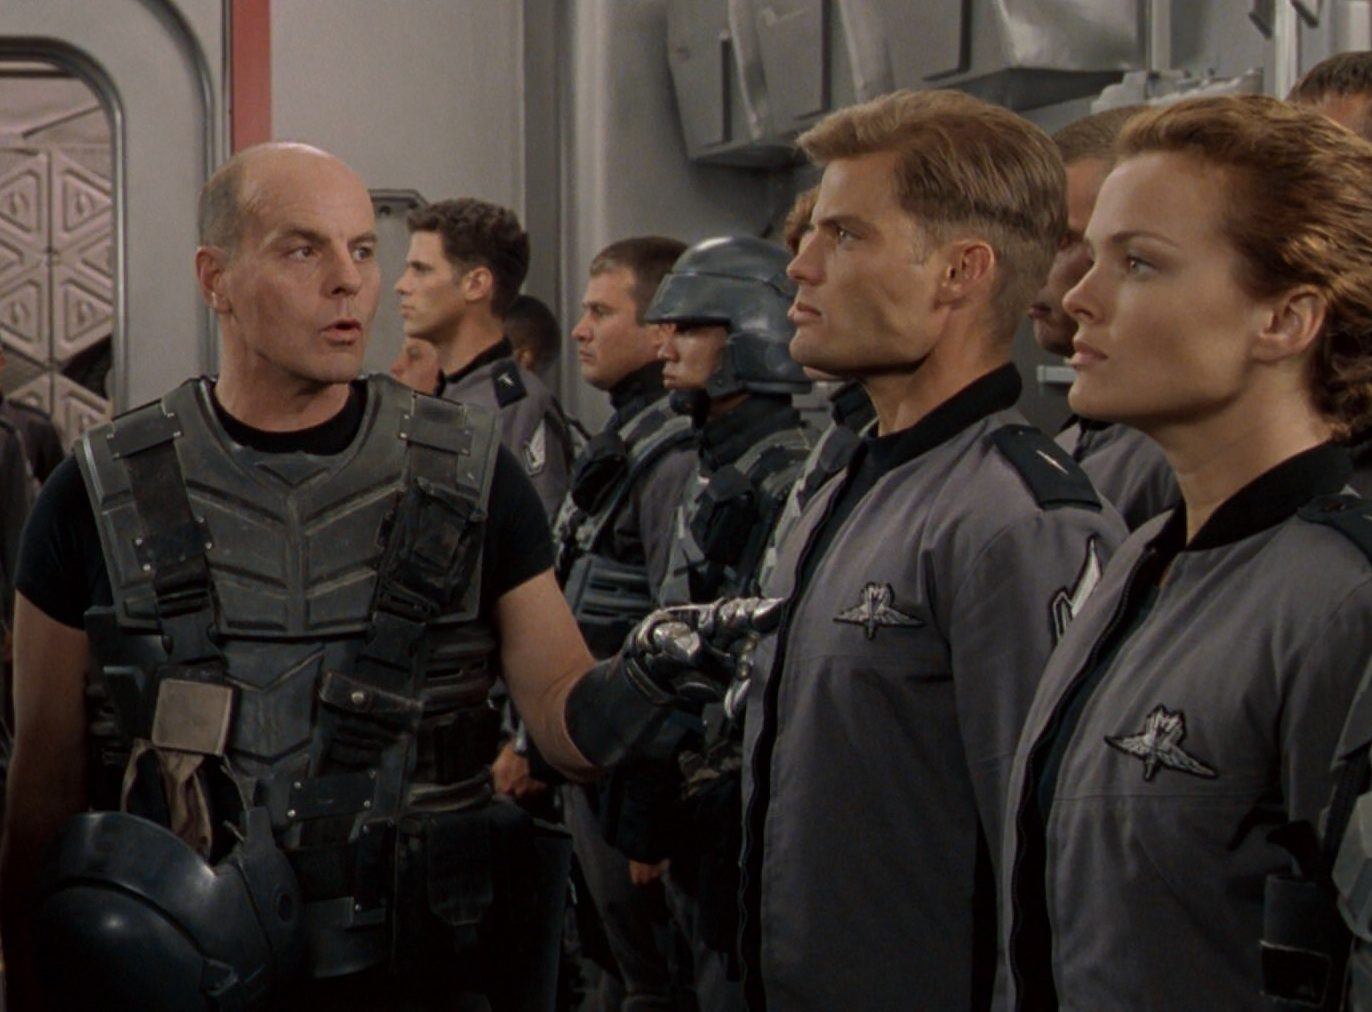 wp 1490948793951 e1623249184627 Mark Wahlberg Almost Starred, And More You Never Knew About Starship Troopers